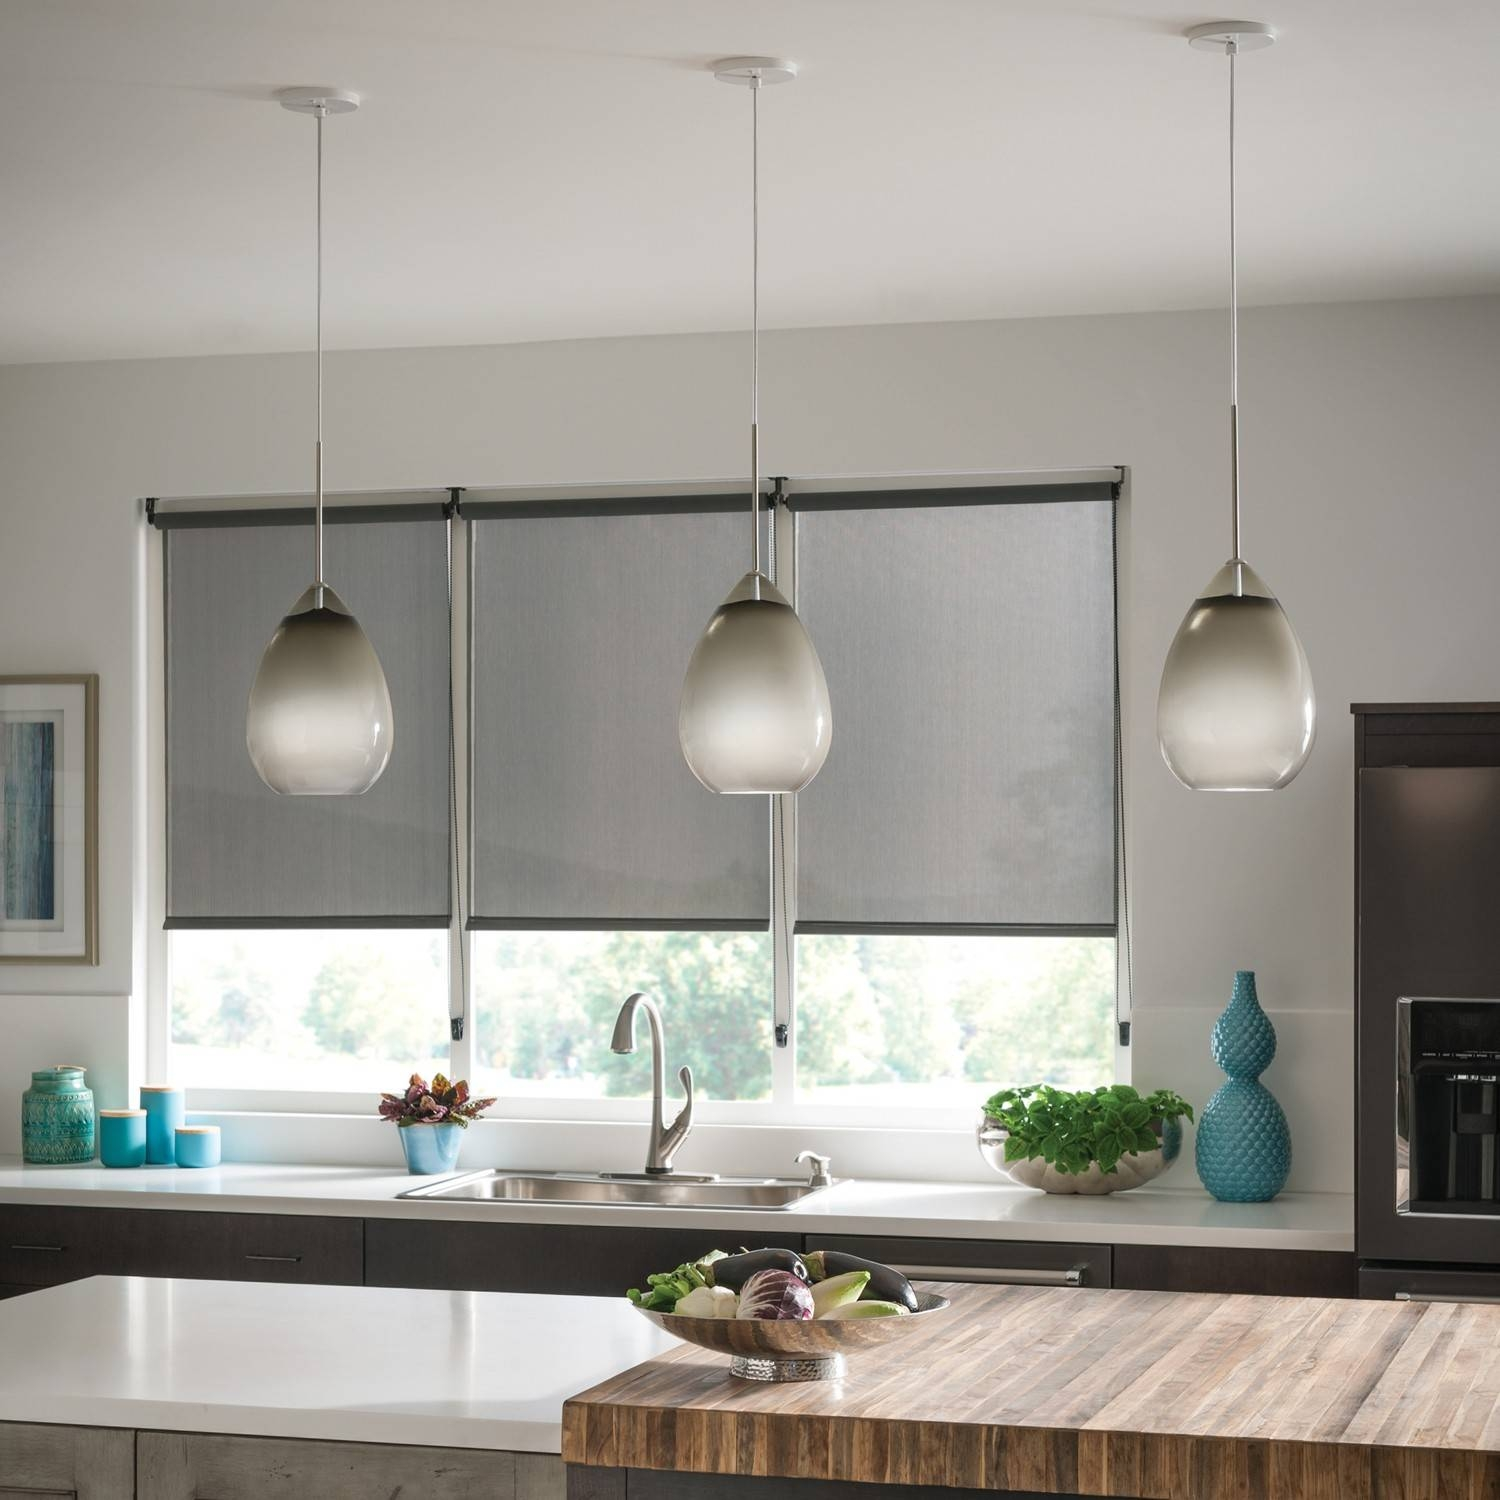 ideas industrial above style lighting clemson kitchen lamps kutskokitchen exotic pendant island